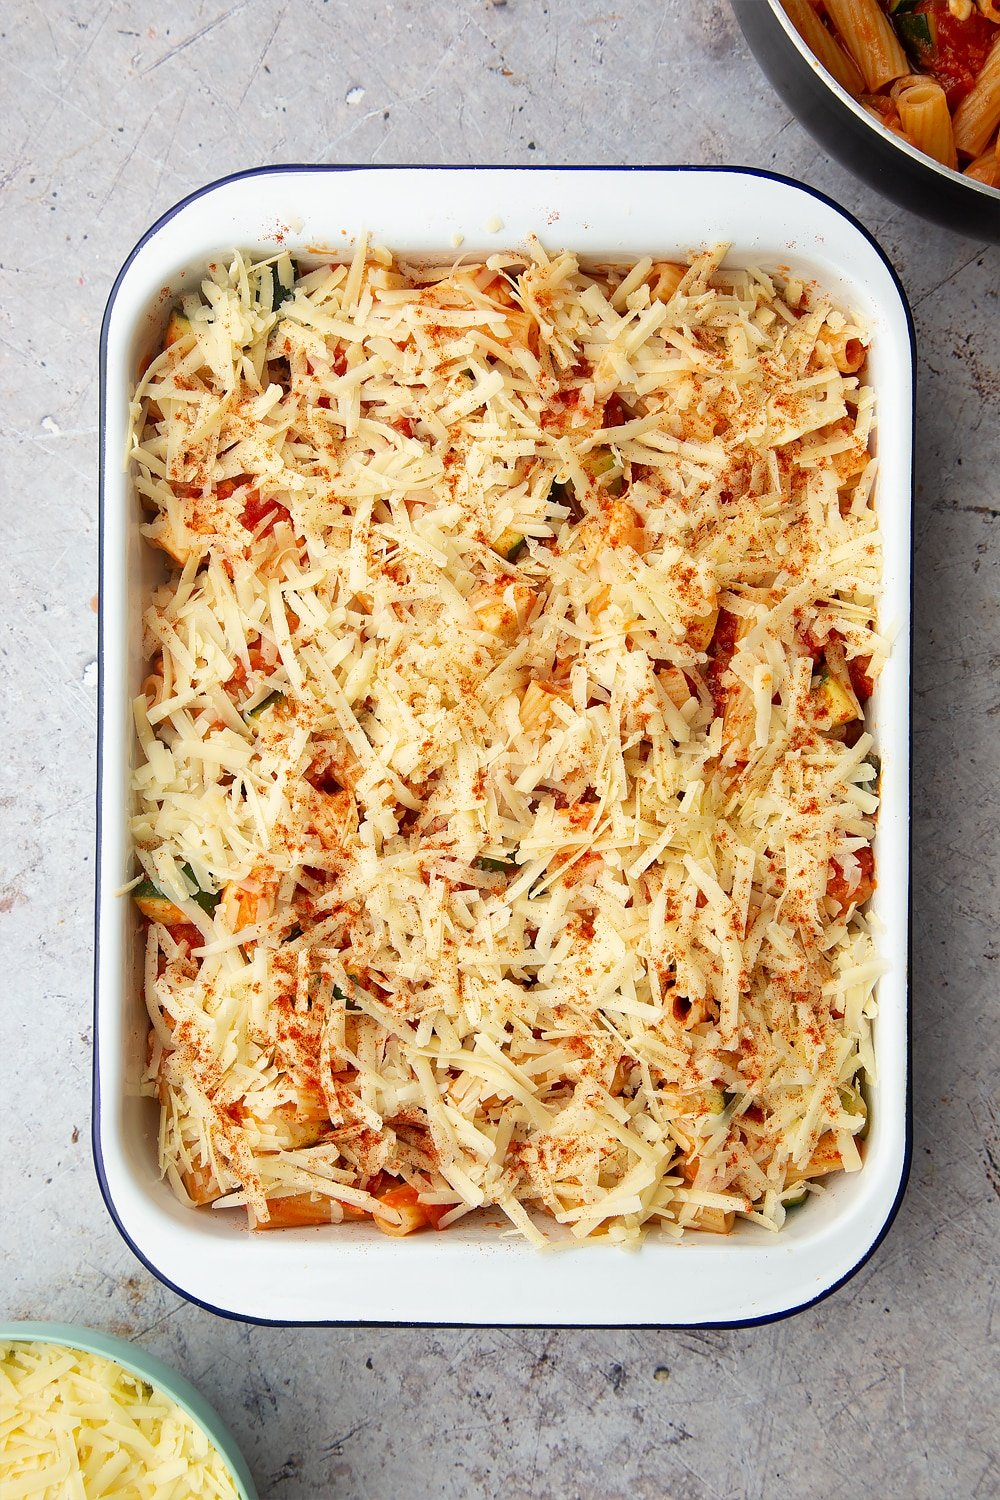 A tray of halloumi pasta bake with a sprinkle of cheese and a dash of smoked paprika on the top ready to be baked in the oven.